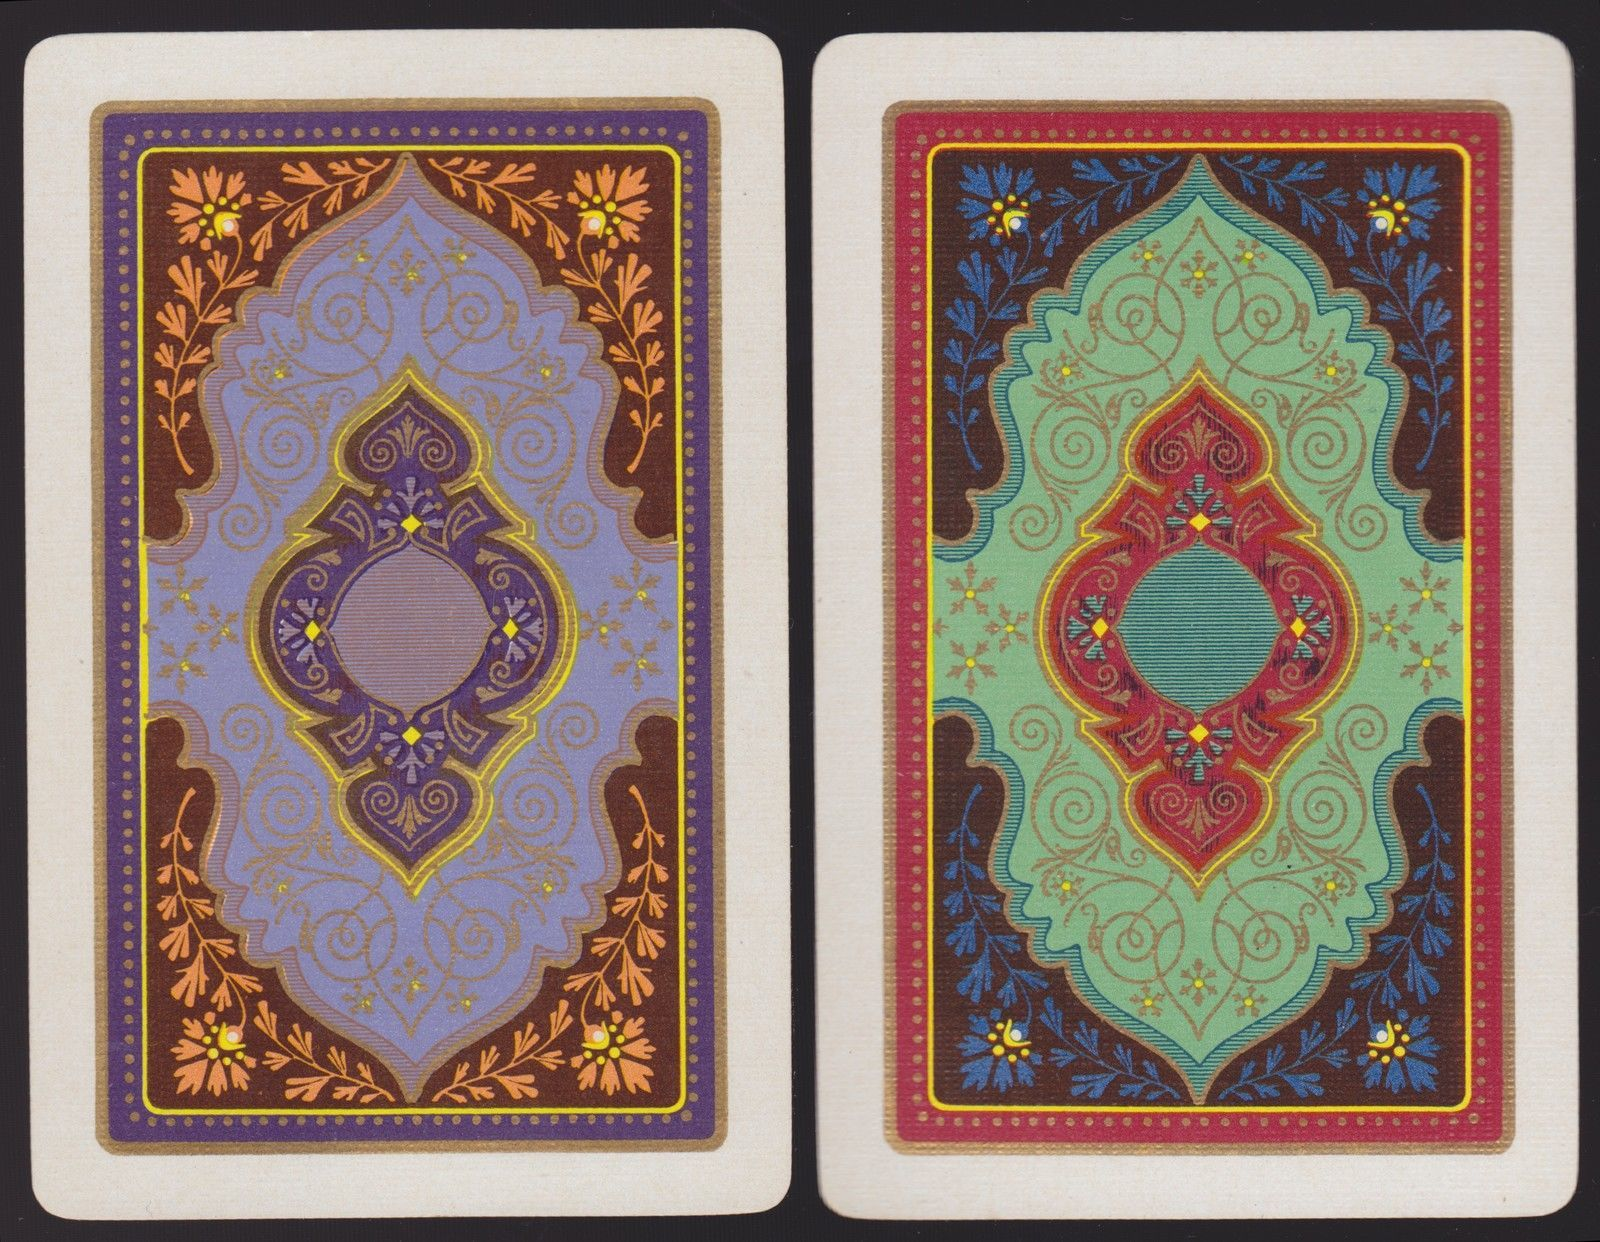 2 SINGLE VINTAGE SWAP PLAYING CARDS US ART DECO DESIGNS PURPLE GREEN GOLD DET | eBay